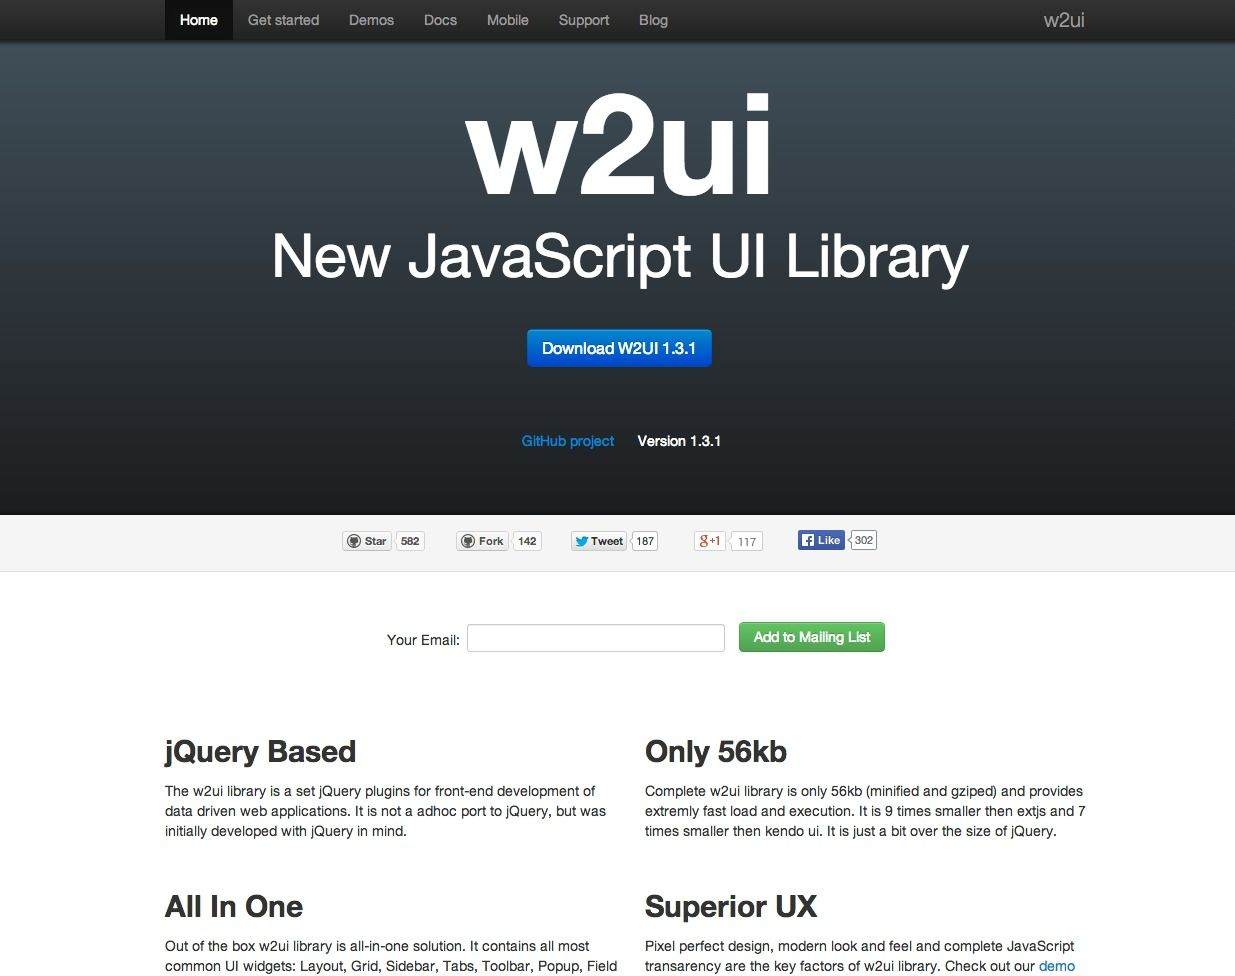 W2ui light weight jquery based plugins for front end development of data driven